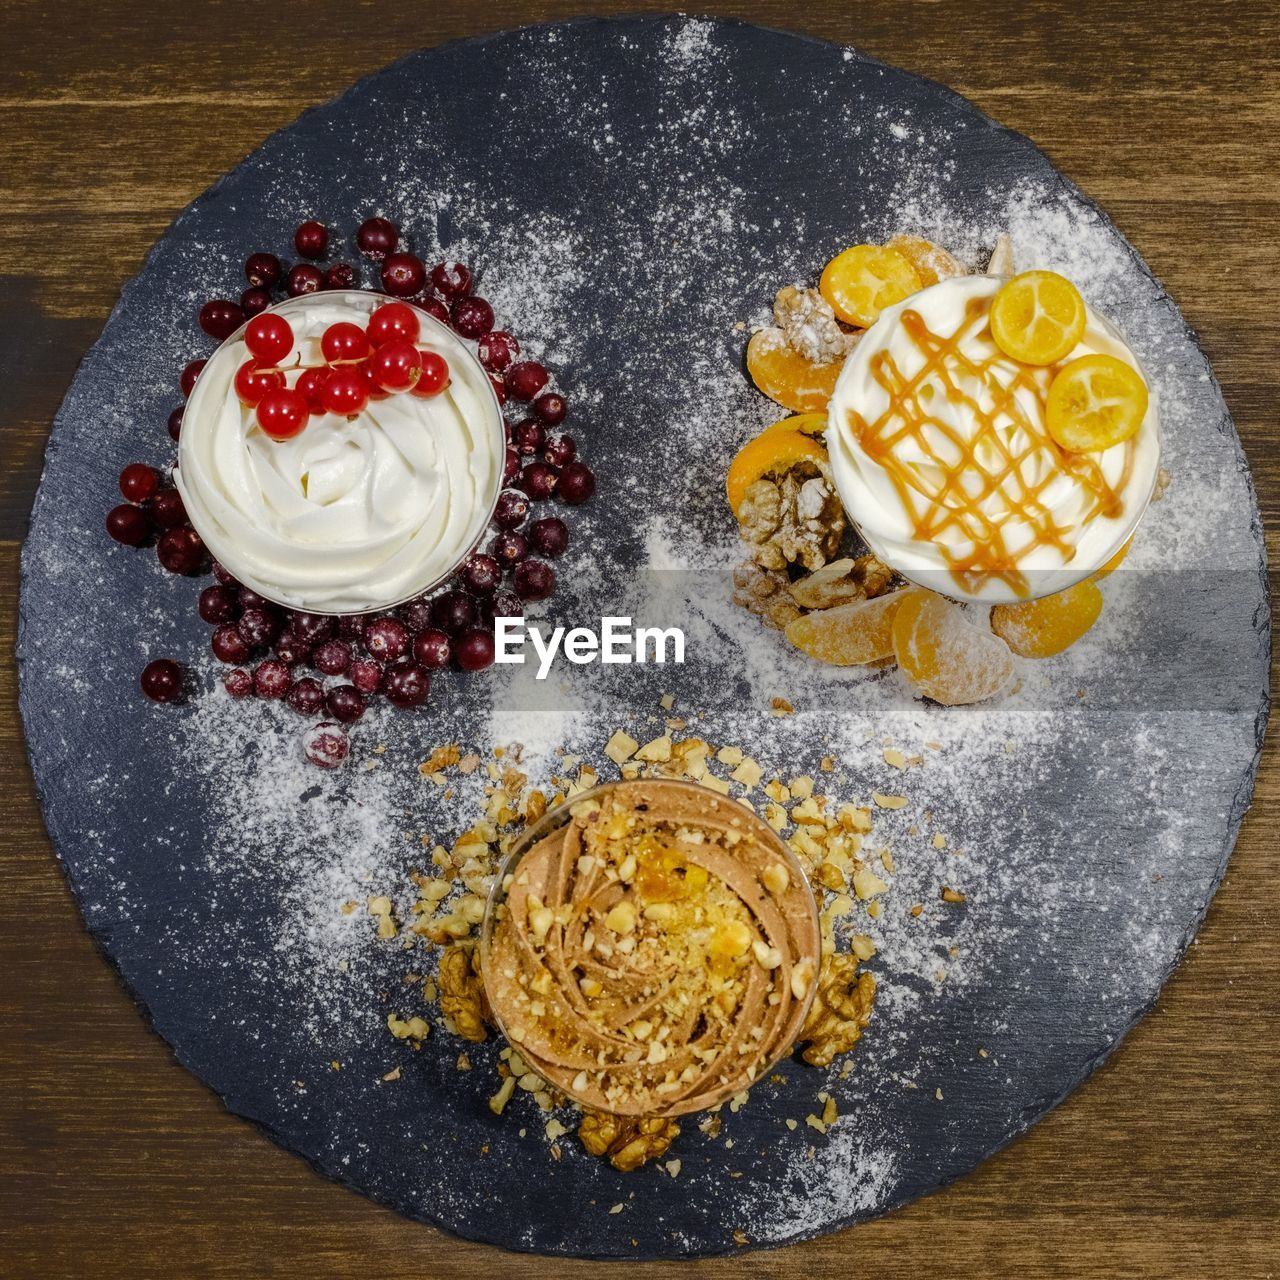 Directly above shot of desserts on slate over table